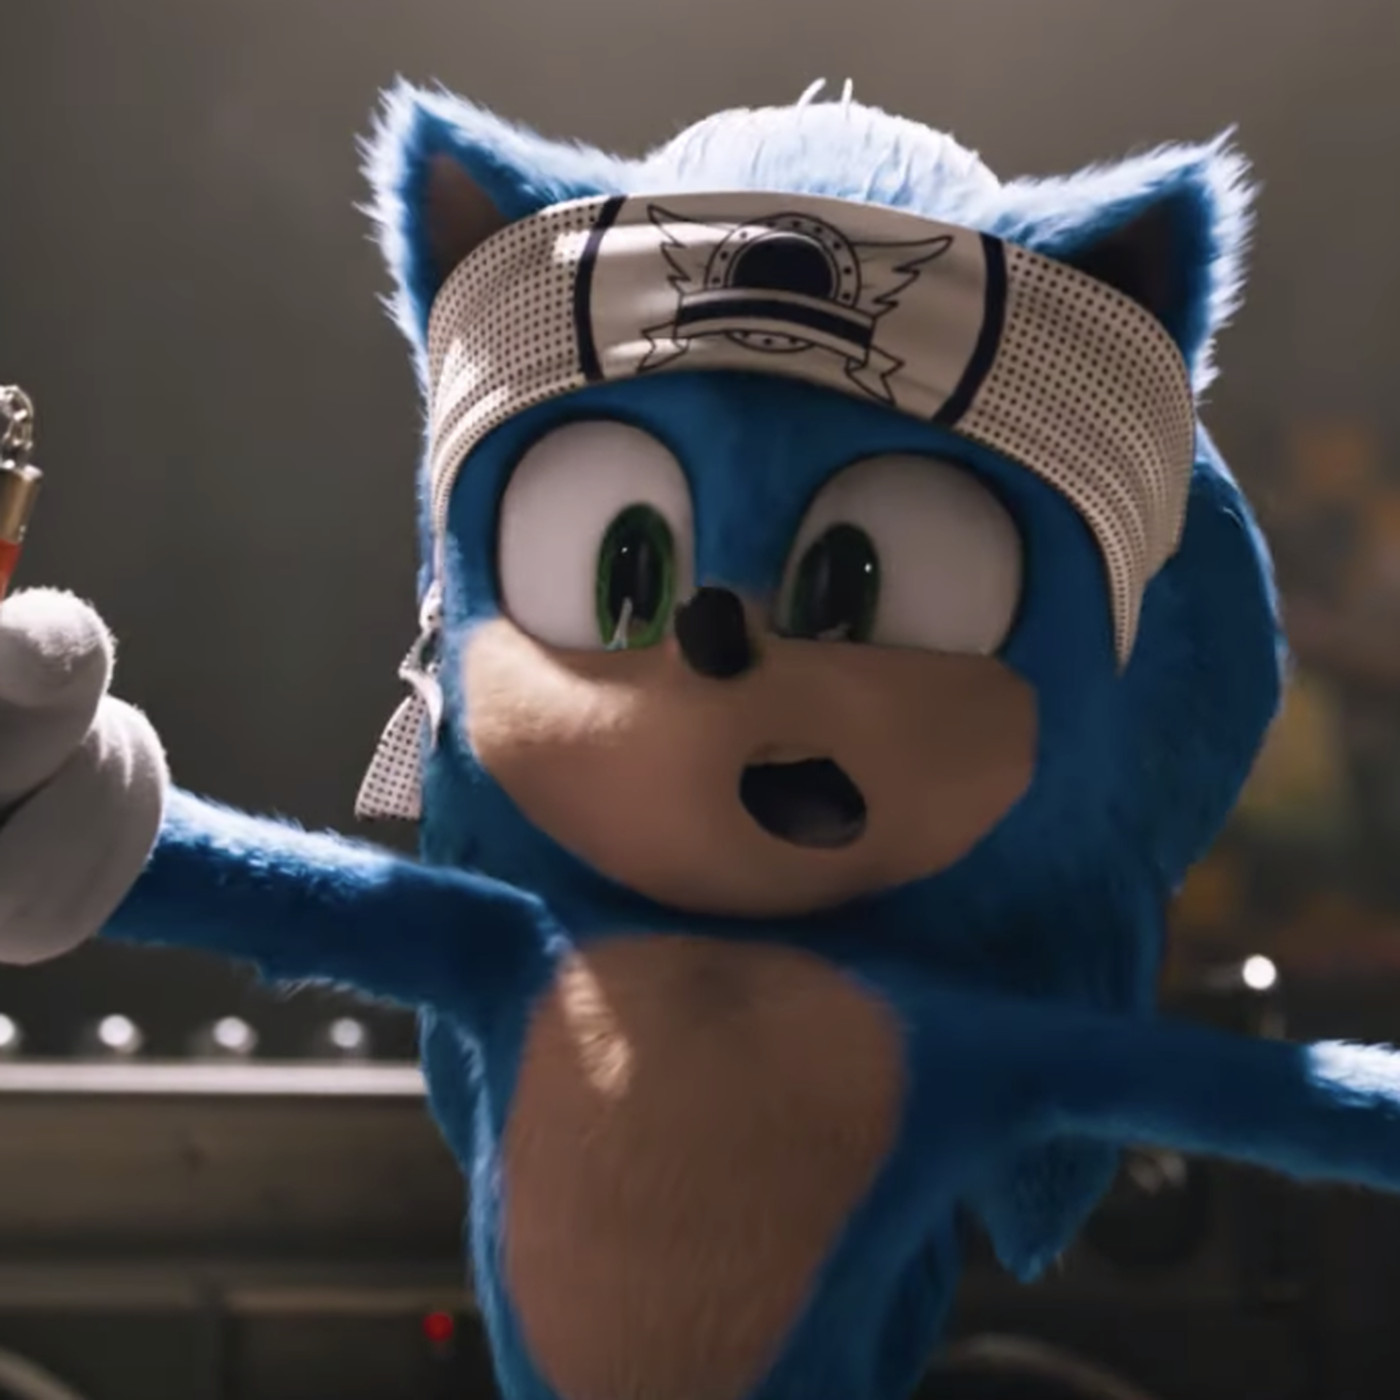 Sonic The Hedgehog Trailer Sonic Gets Much Needed Glow Up Vox